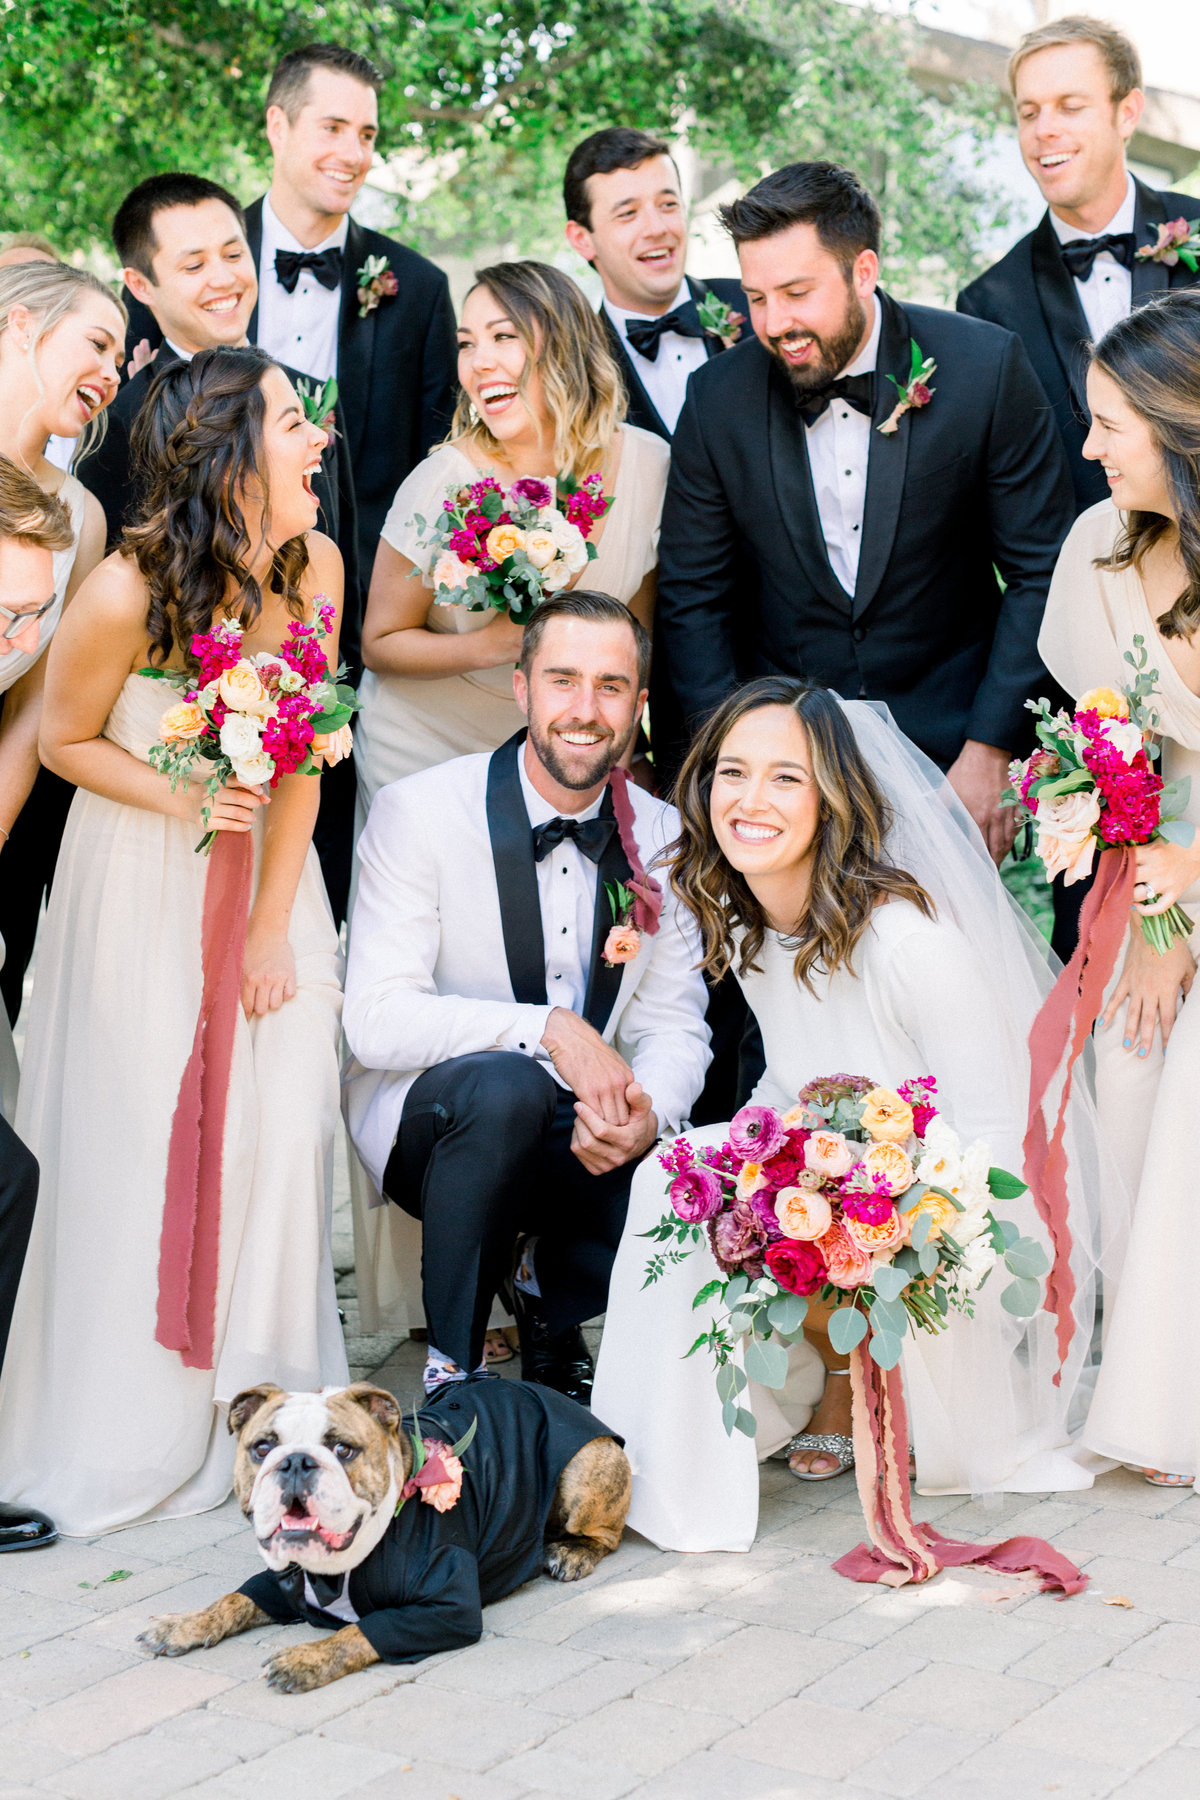 Wedding party portrait shot with ring dog in tuxedo at Maravilla Gardens